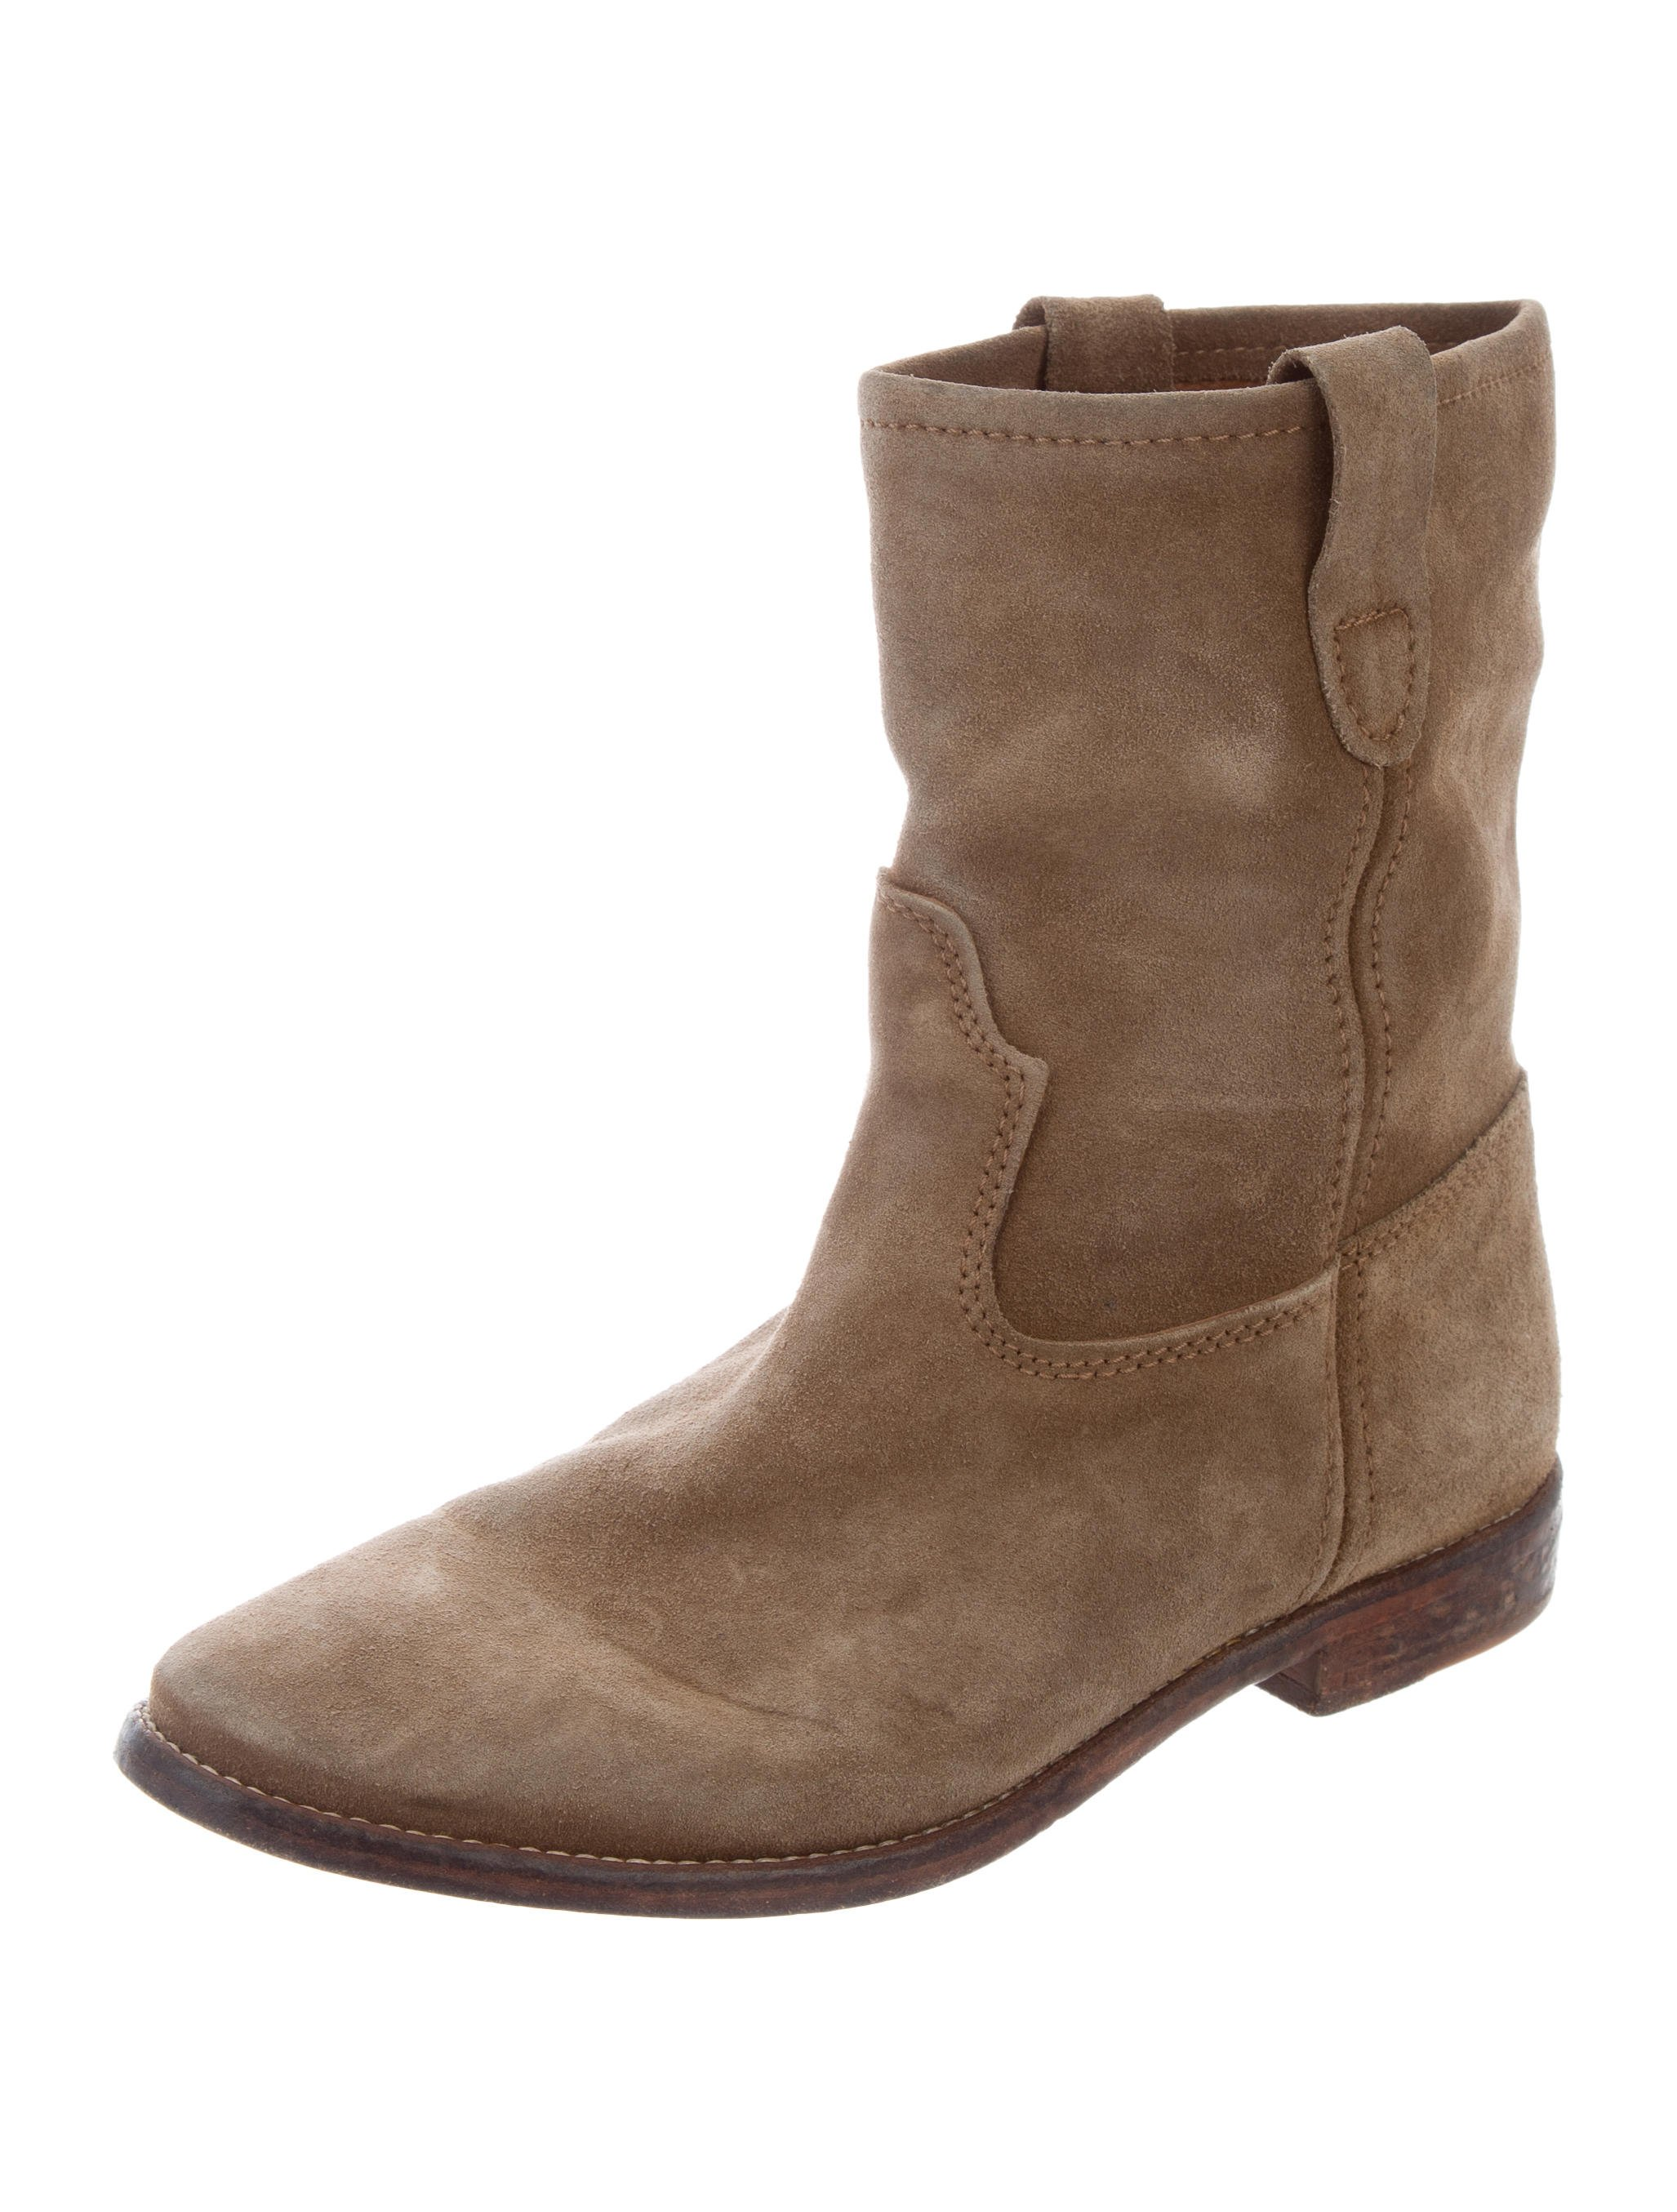 isabel marant suede jenny ankle boots shoes isa48047 the realreal. Black Bedroom Furniture Sets. Home Design Ideas